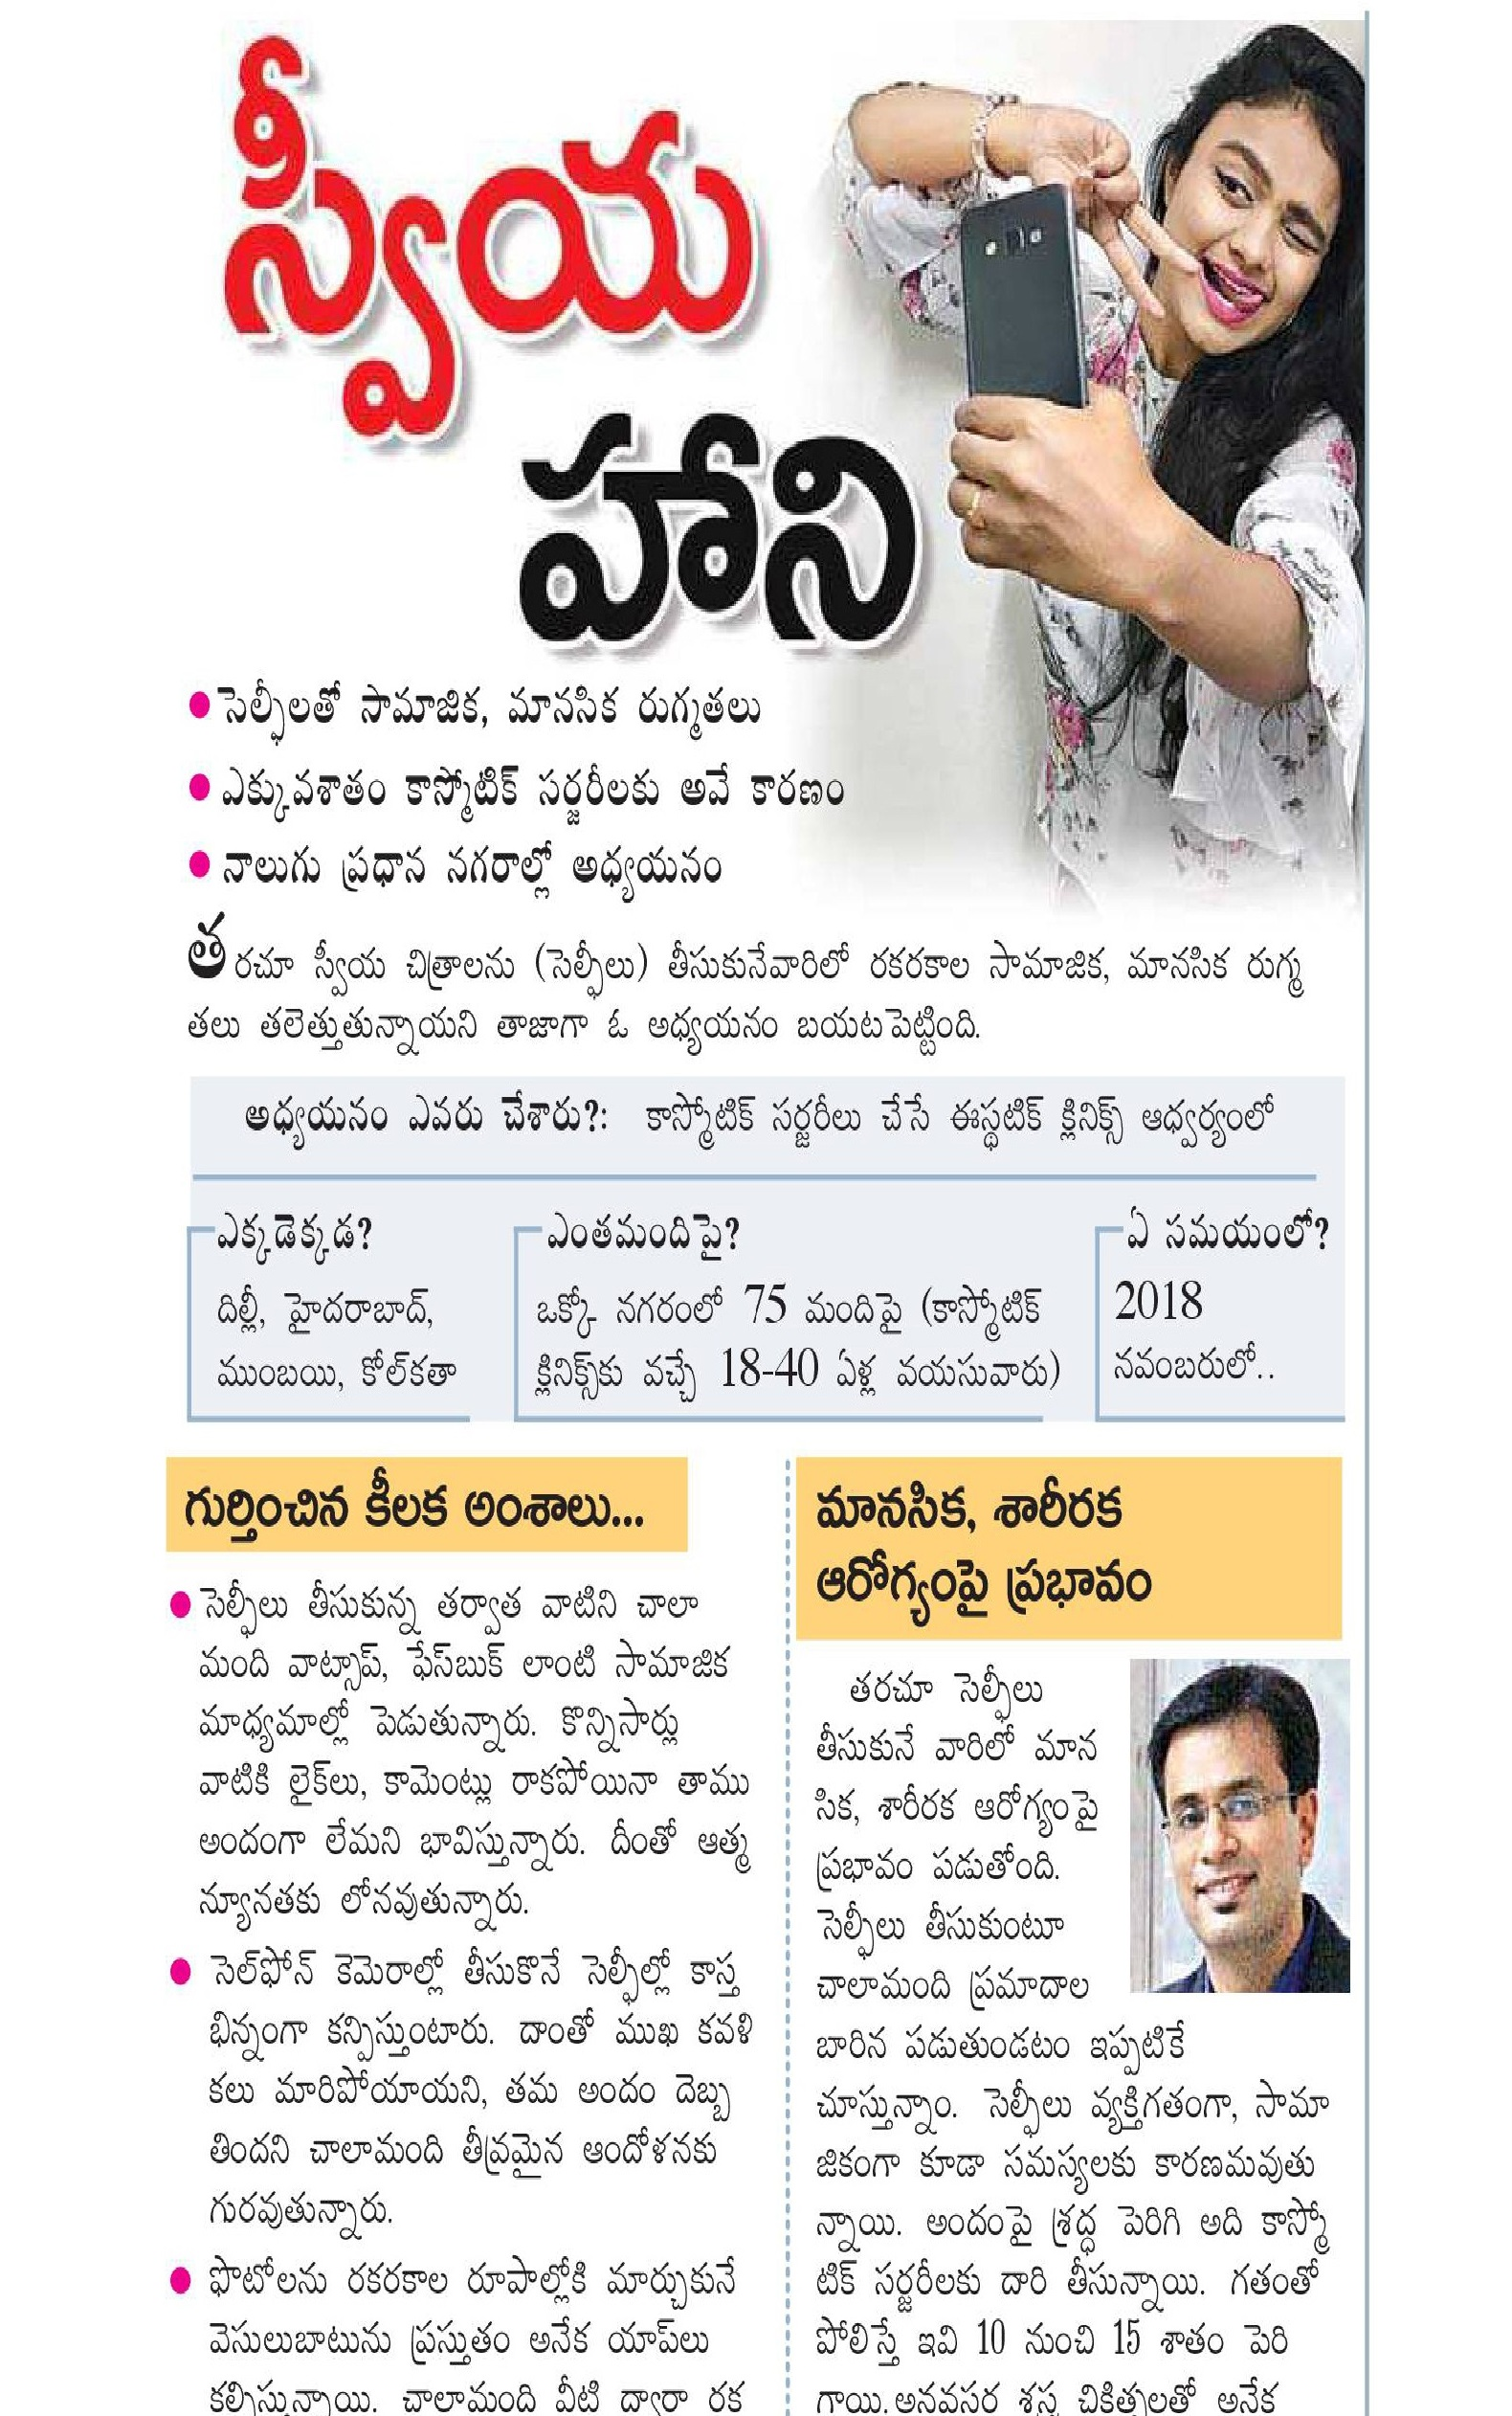 Selfie Addiction Leading Towards Cosmetic Surgery - Eenadu